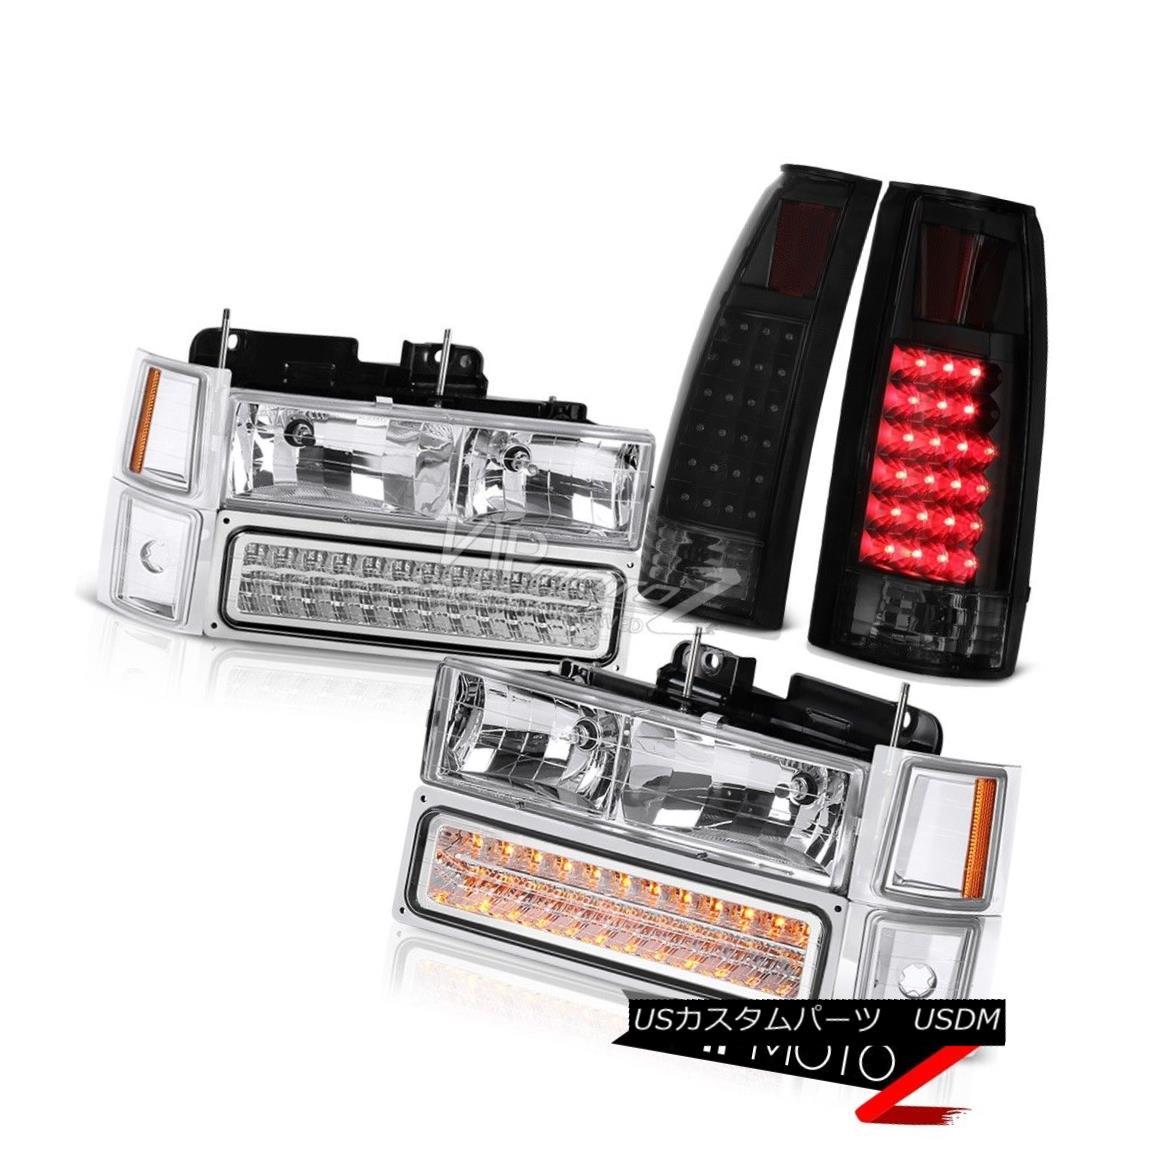 ヘッドライト 94-98 Chevy Silverado Sinister Black Taillamps Chrome Headlights Signal Parking 94-98 Chevy Silverado Sinister Black Taillampsクロームヘッドライト信号駐車場